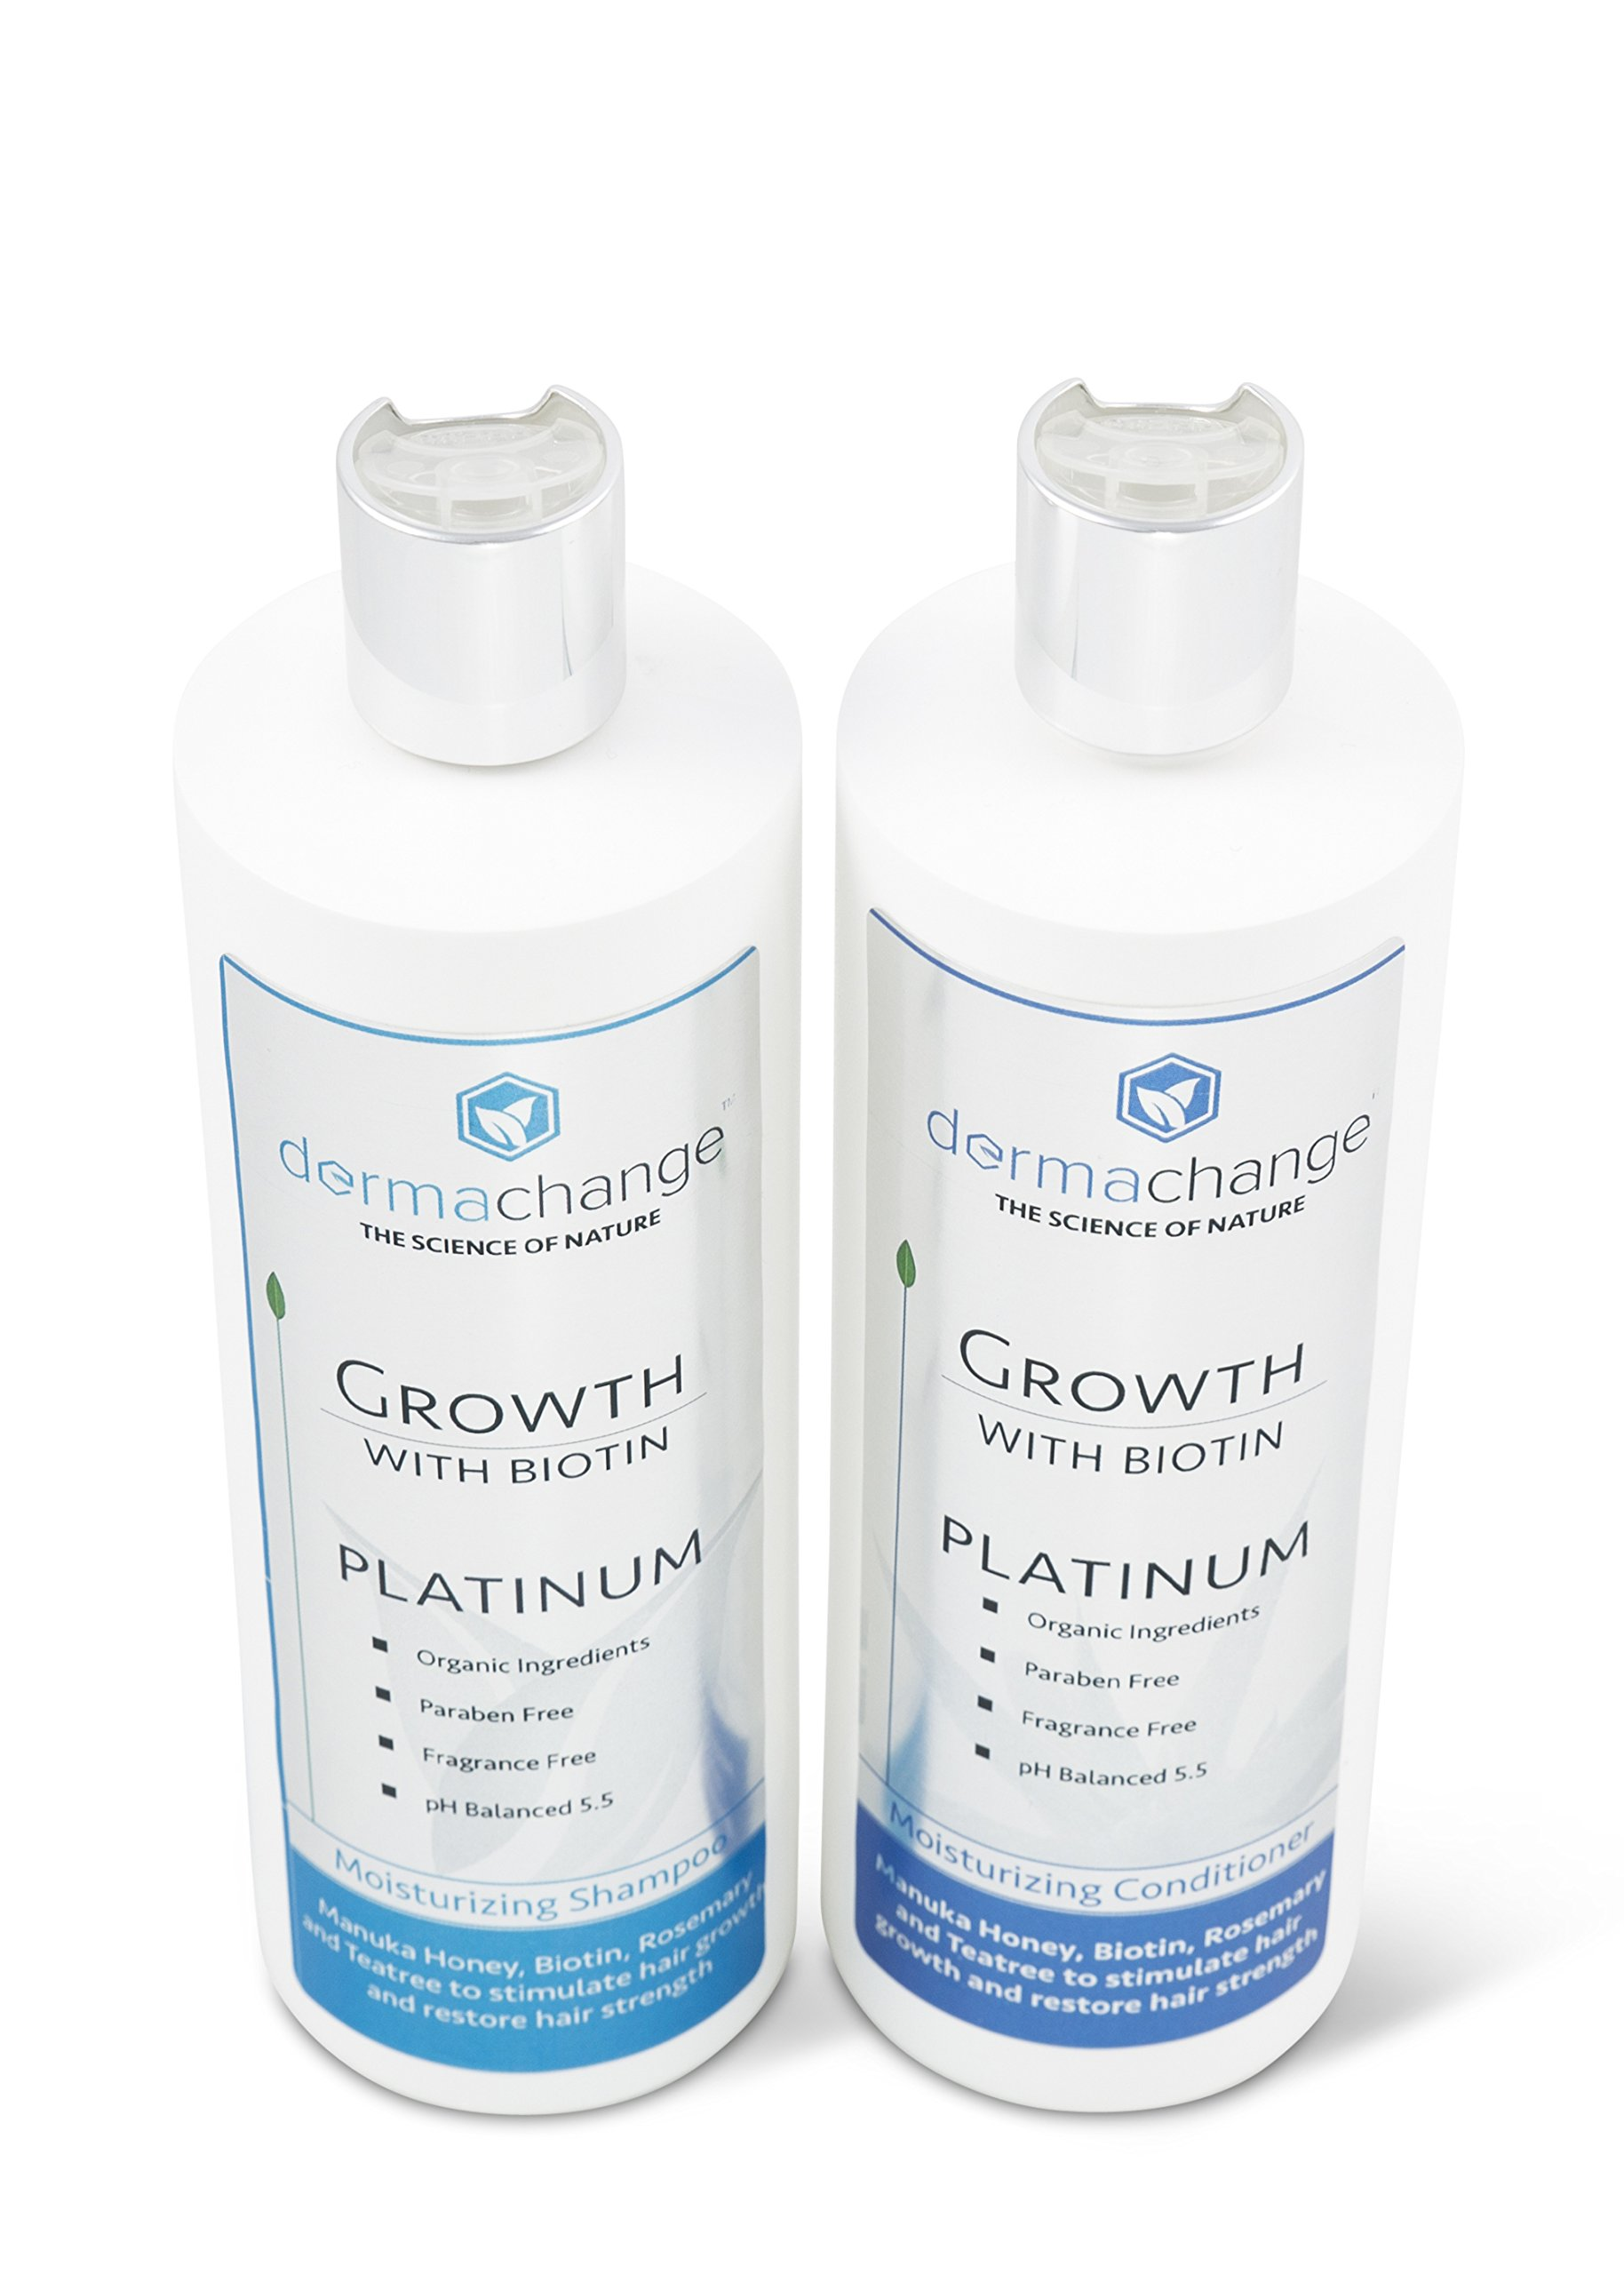 DermaChange Platinum Hair Growth Moisturizing Conditioner - With Argan Oil, Biotin & Tea Tree Extract - Supports Hair Regrowth - Hair Loss Treatments (16 oz) - Made in USA by DermaChange (Image #4)